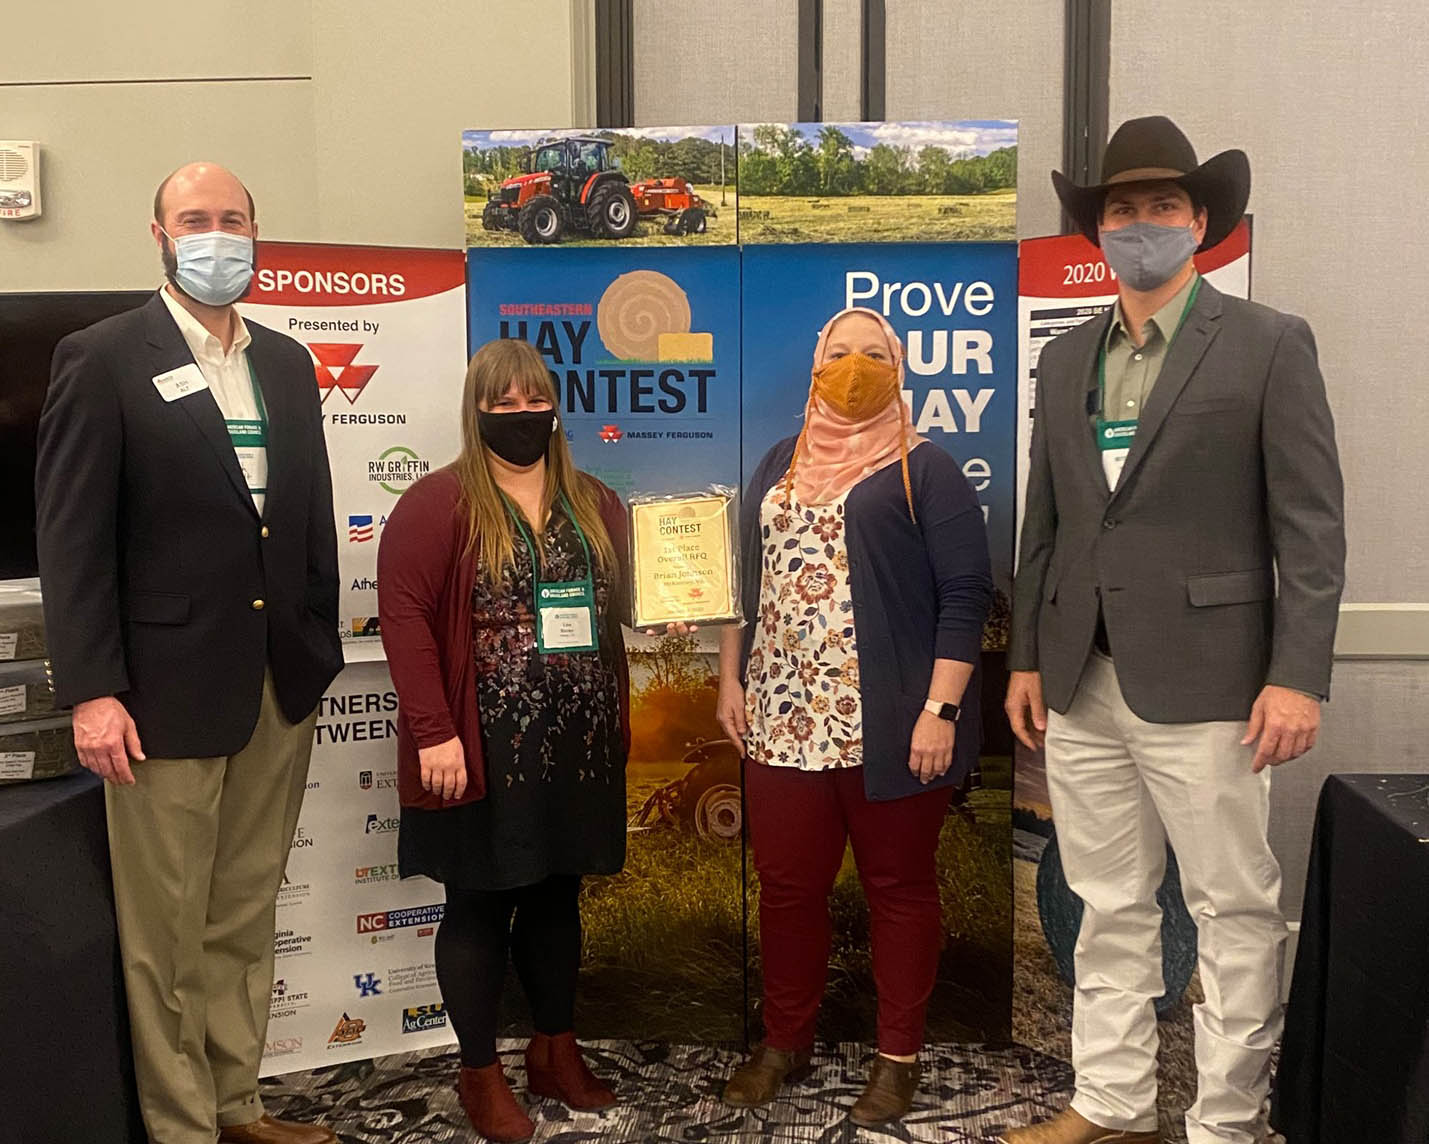 Despite the challenges of the pandemic, 370 entries were submitted in the 2020 Southeastern Hay Contest (SEHC), just below the record-setting number of submissions for 2019. More states submitted samples to the contest than ever before, with nine represented.